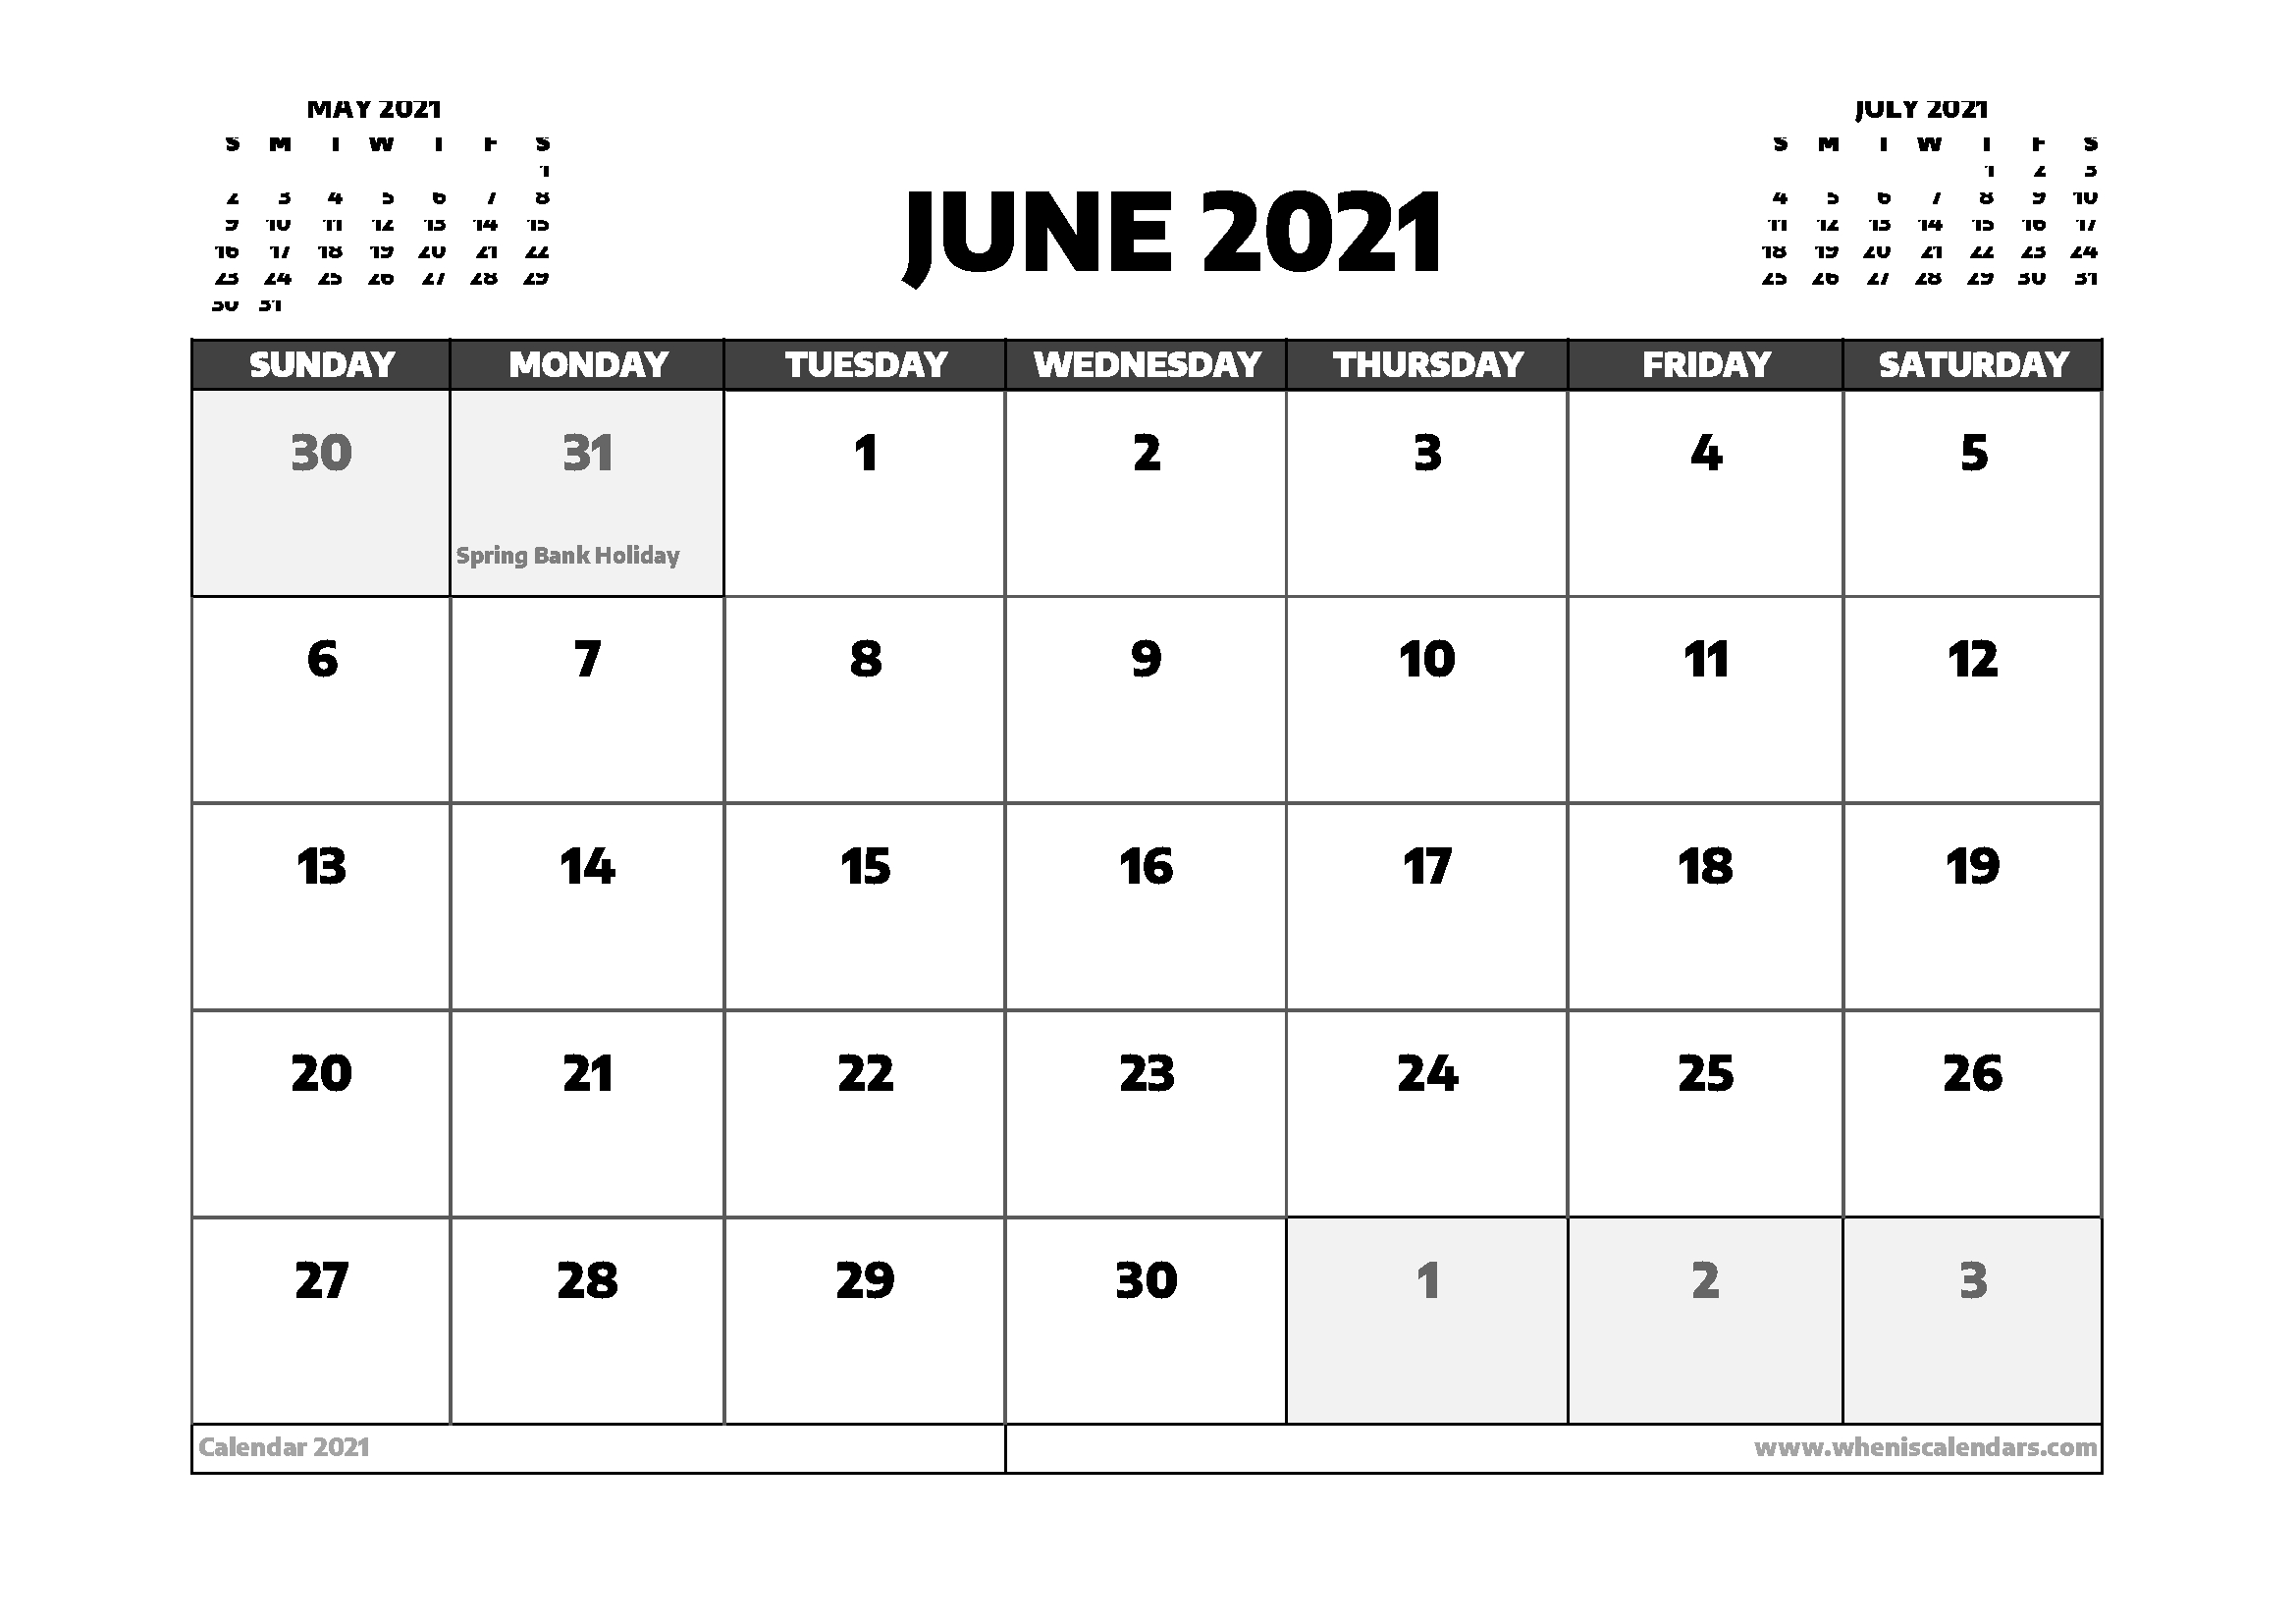 June 2021 Calendar Uk With Holidays In 2020 | Calendar Uk